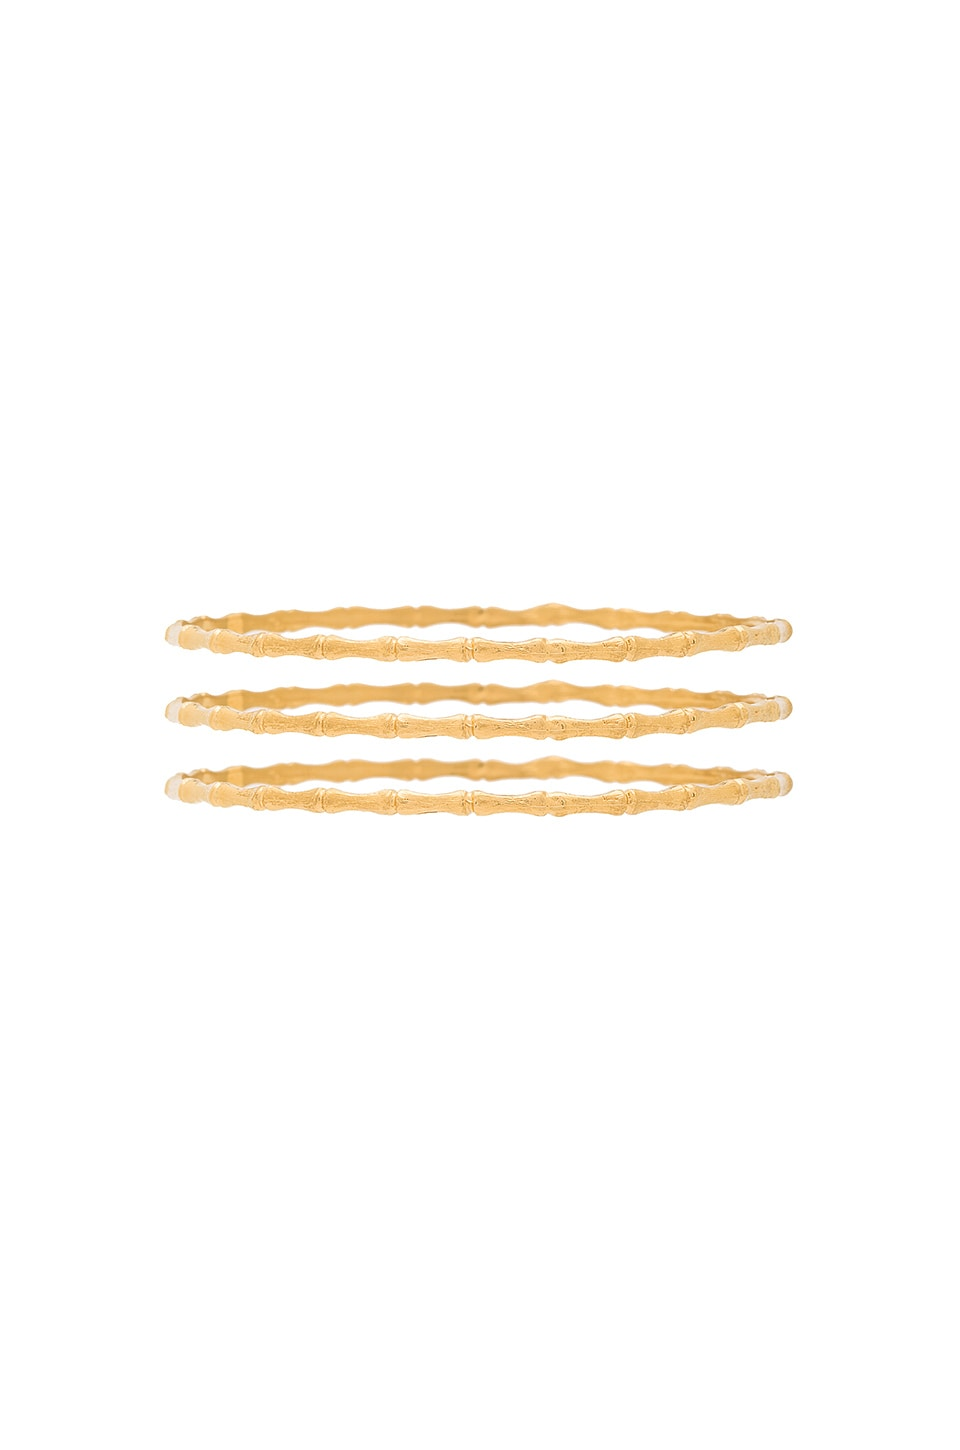 Natalie B Jewelry Bamboo Bangle Set in Gold